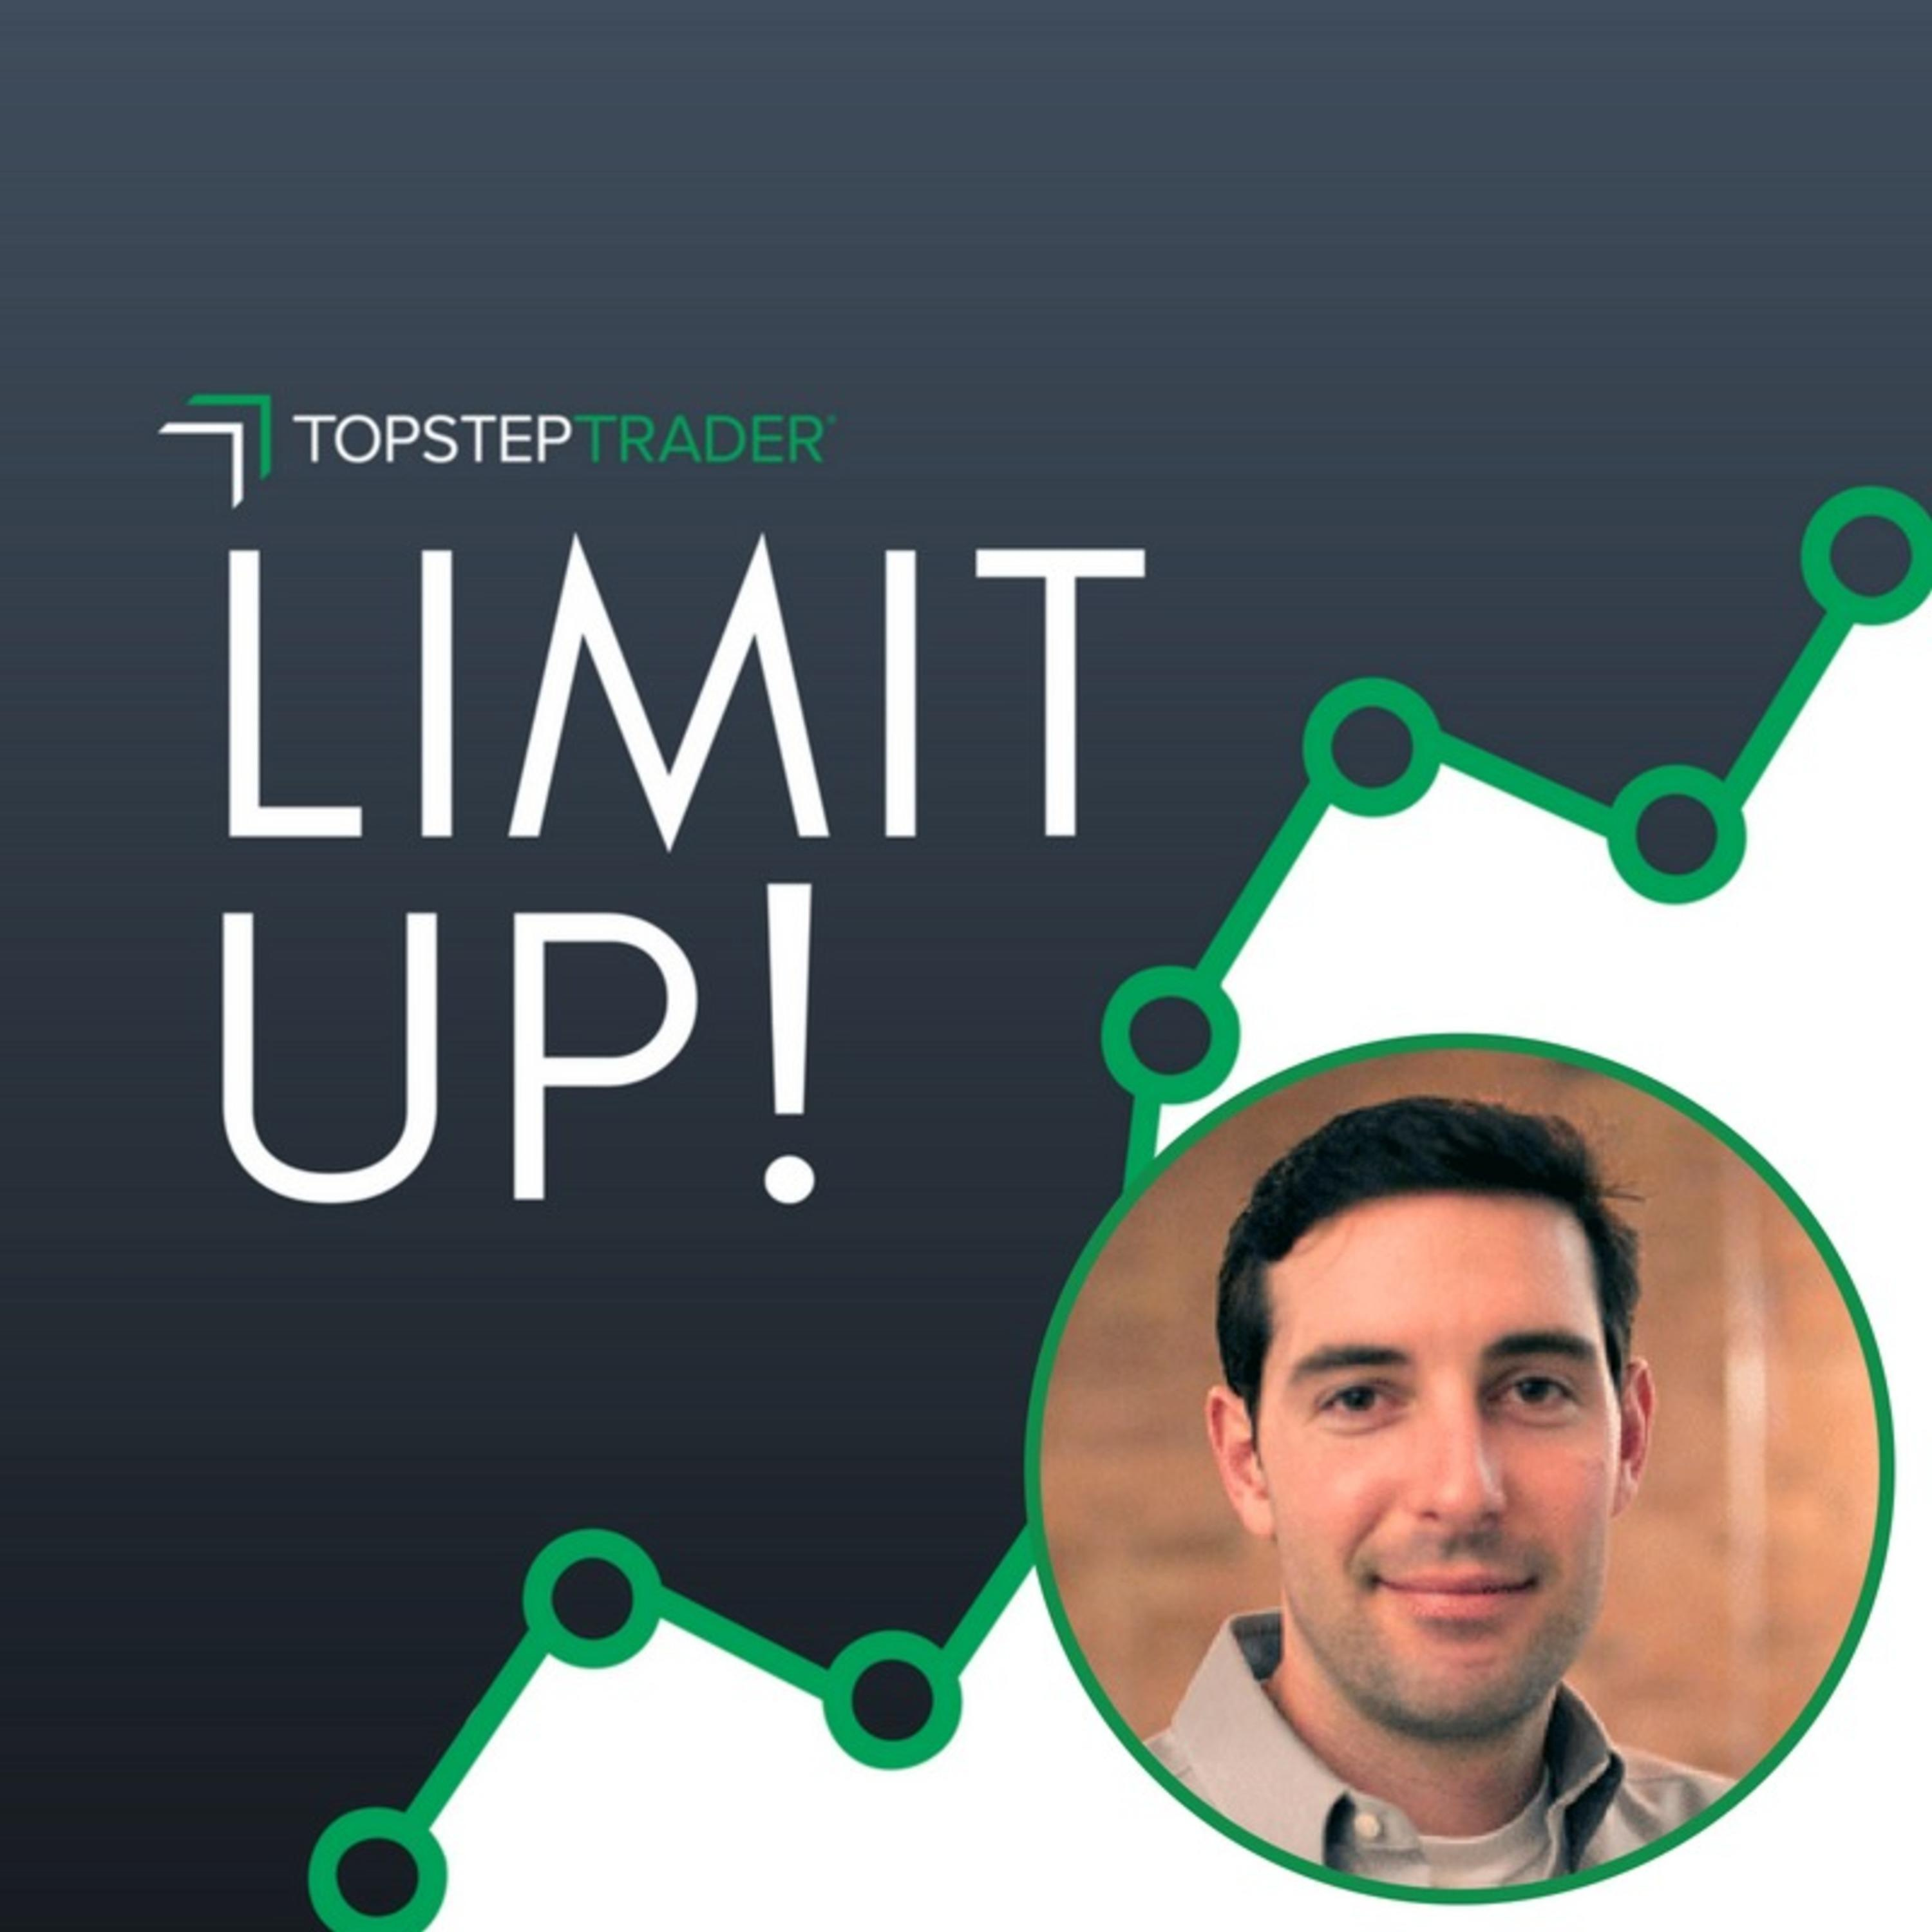 Be the Best Trader You Can Be - 5 Proven Ways to Make Progress | Trading Podcast